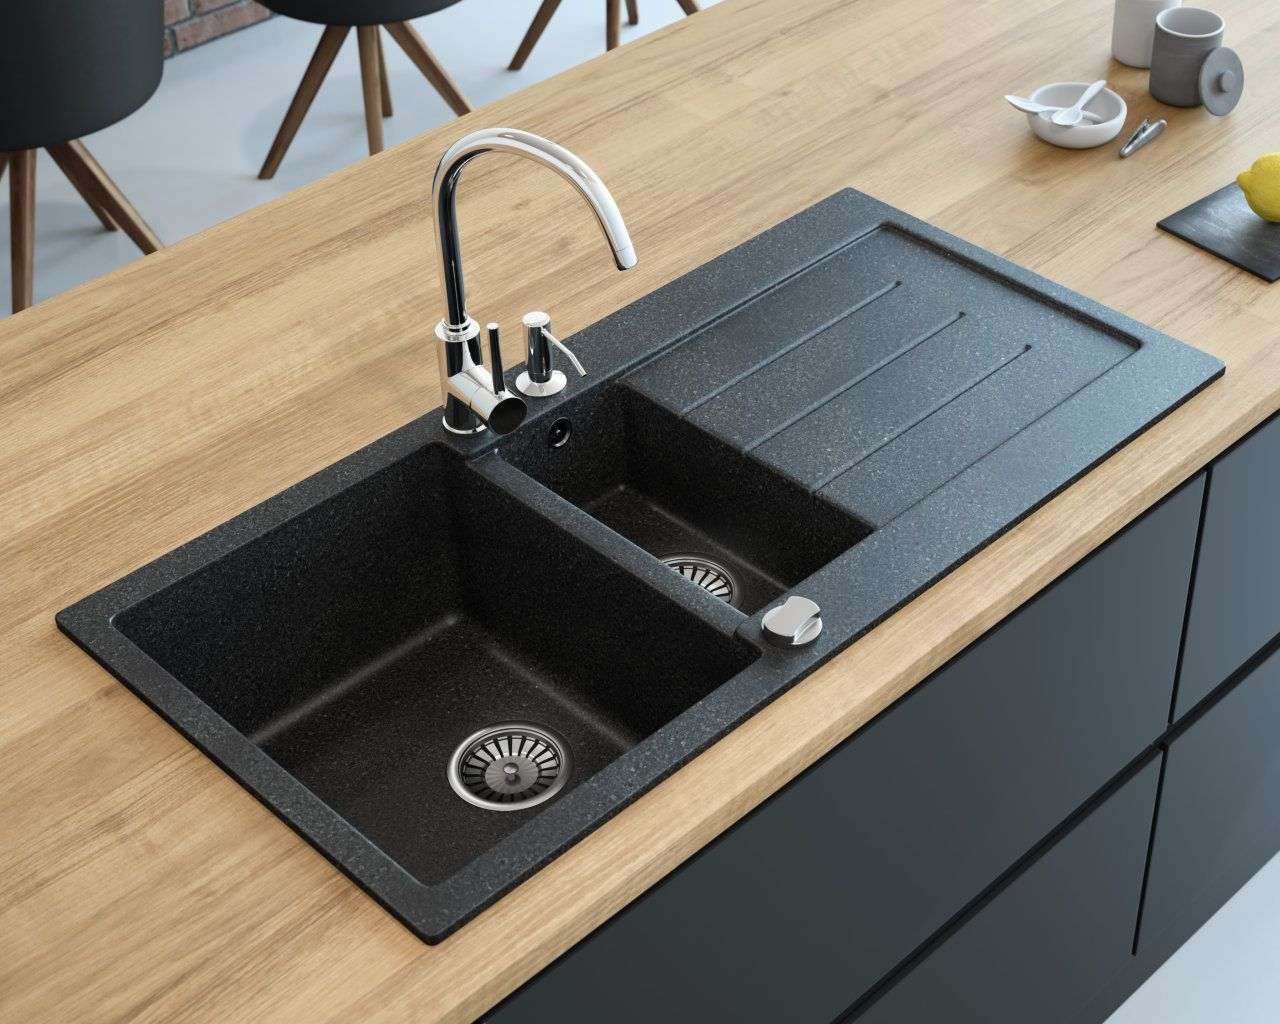 Free Color Samples Lavello Sinks Kitchen Sink Design Black Kitchen Sink Double Bowl Kitchen Sink